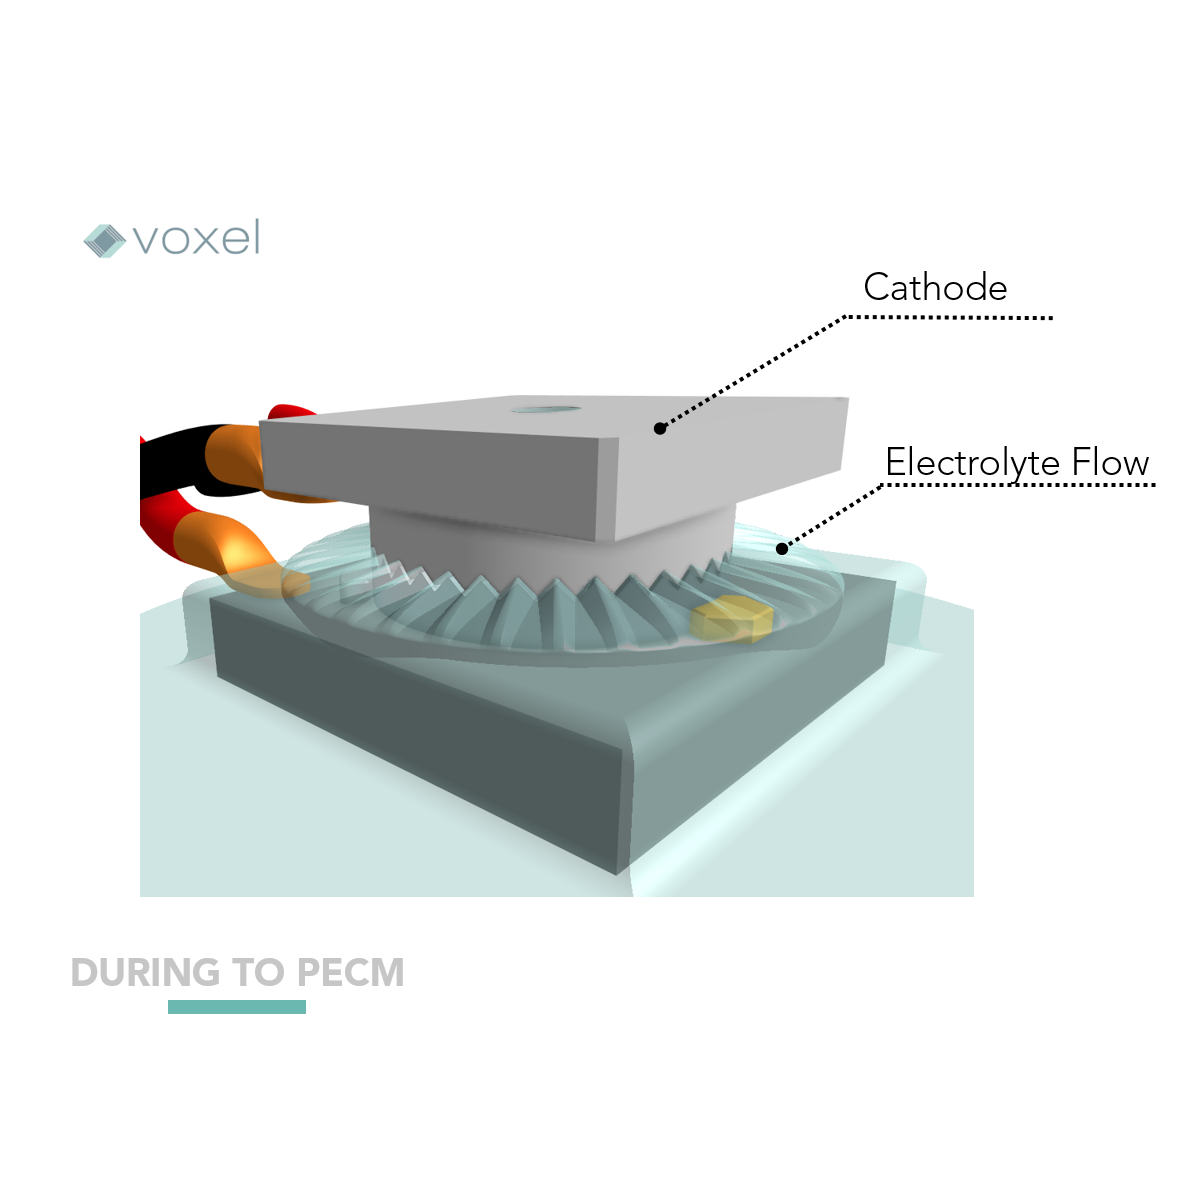 diagram of cathode and electrolyte flow used for electrochemical machining